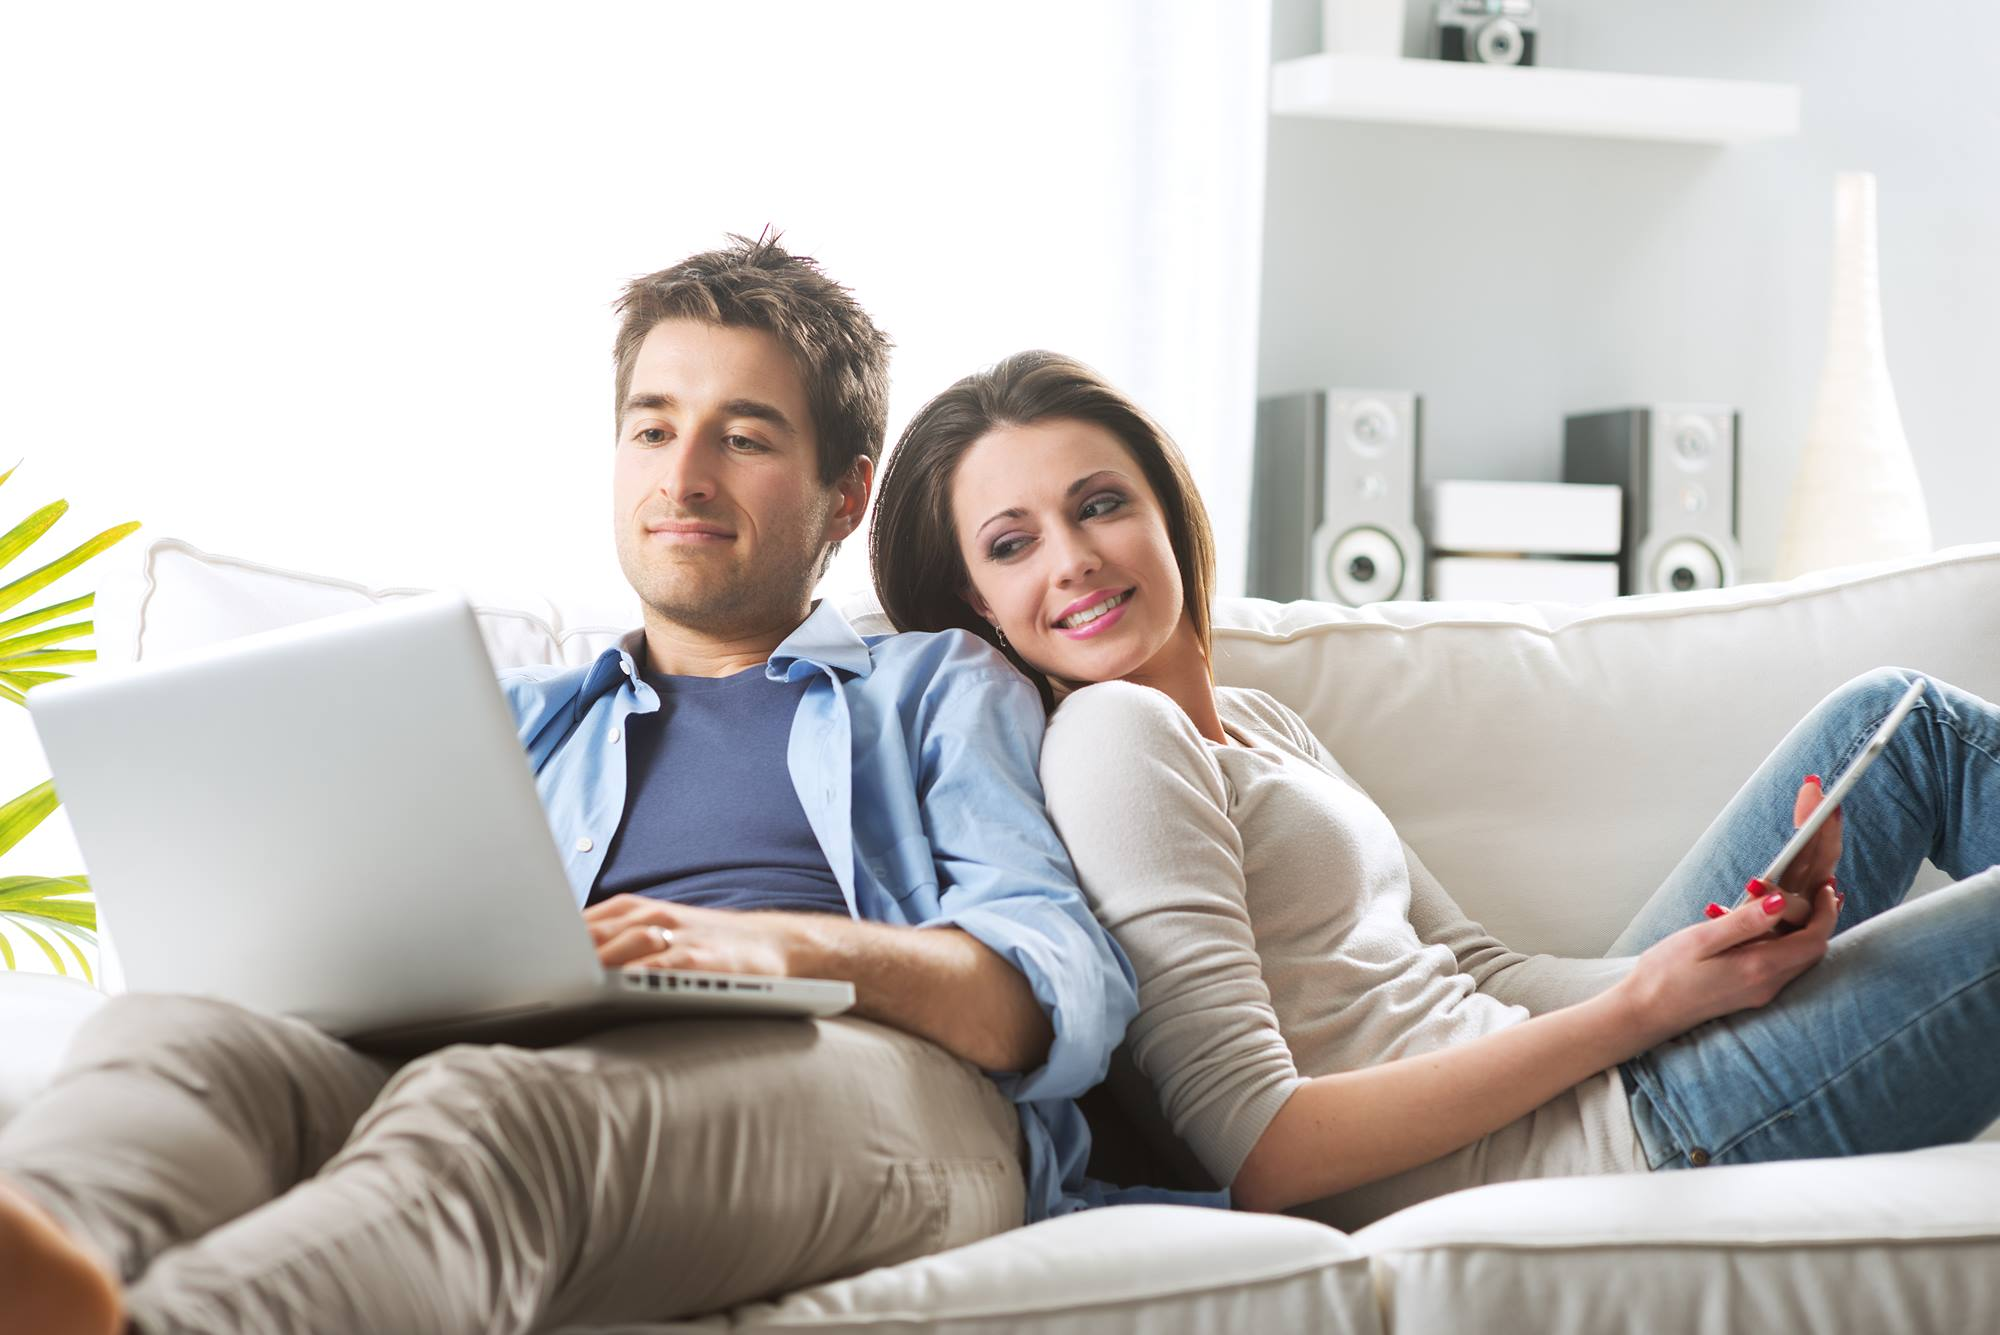 Young couple relaxing on sofa with digital tablet and laptop.